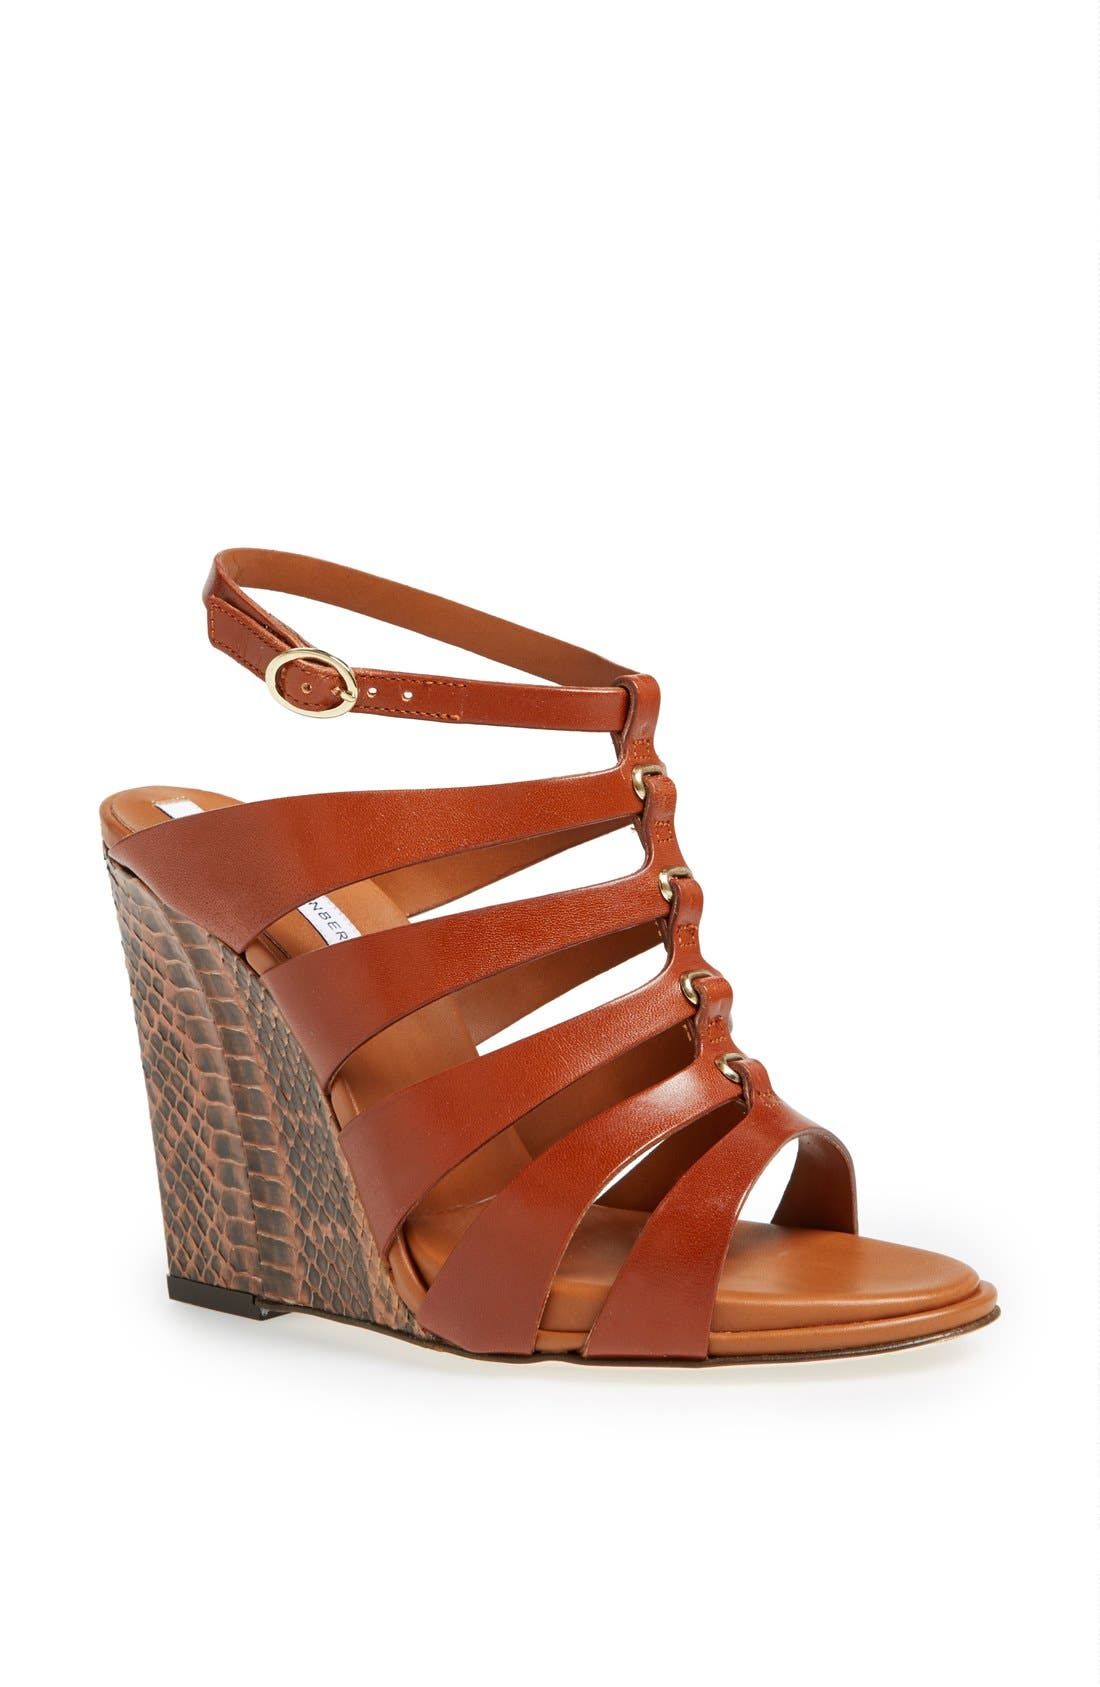 Alternate Image 1 Selected - Diane von Furstenberg 'Wave' Wedge Sandal